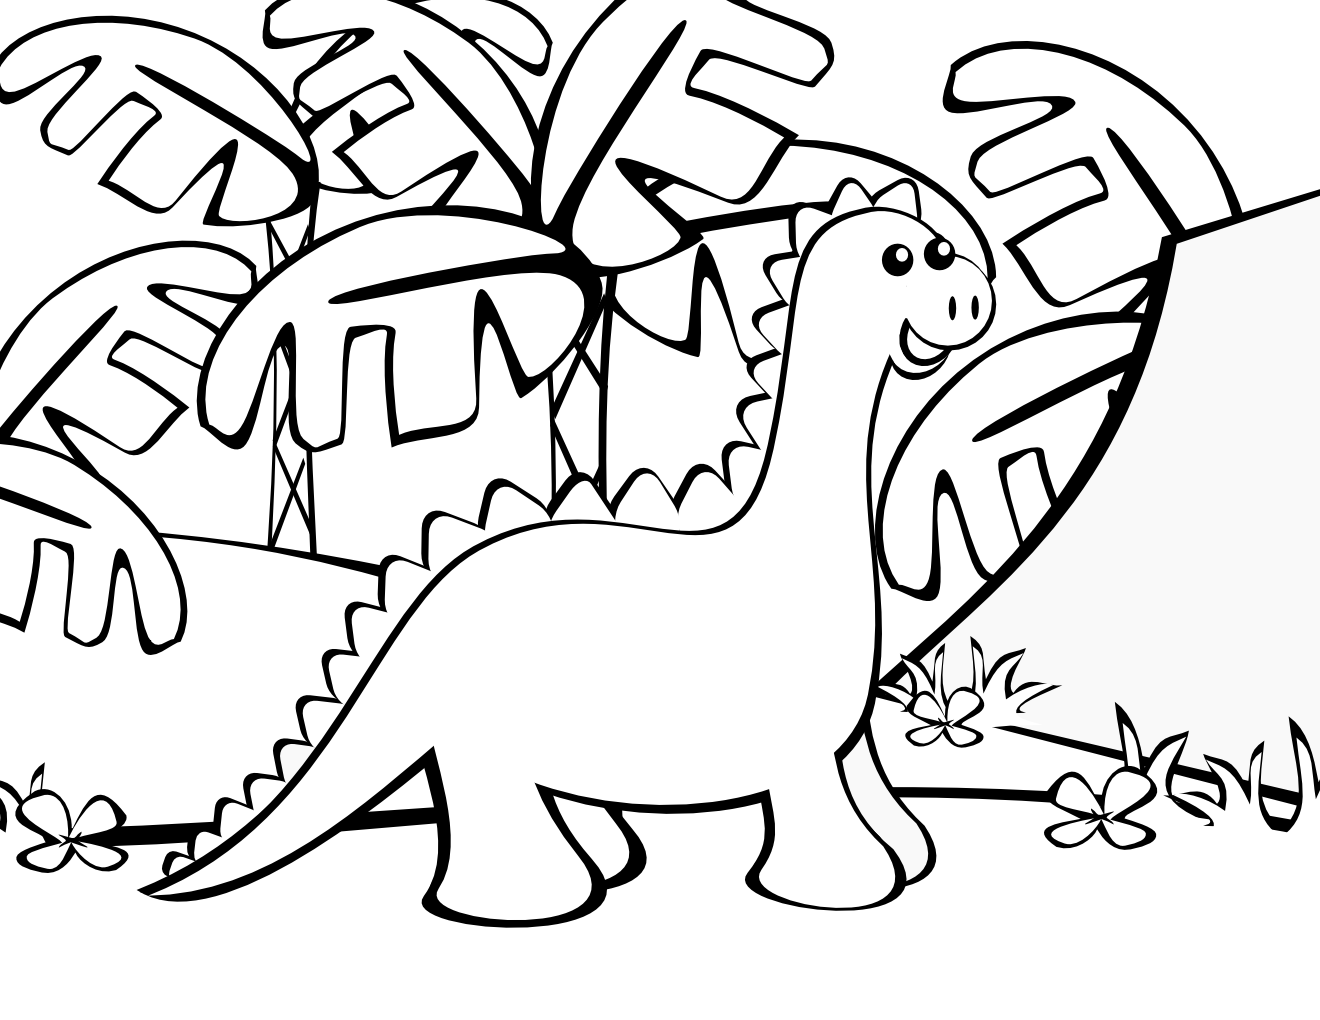 Free Coloring Pages: Dinosaur Coloring Pages